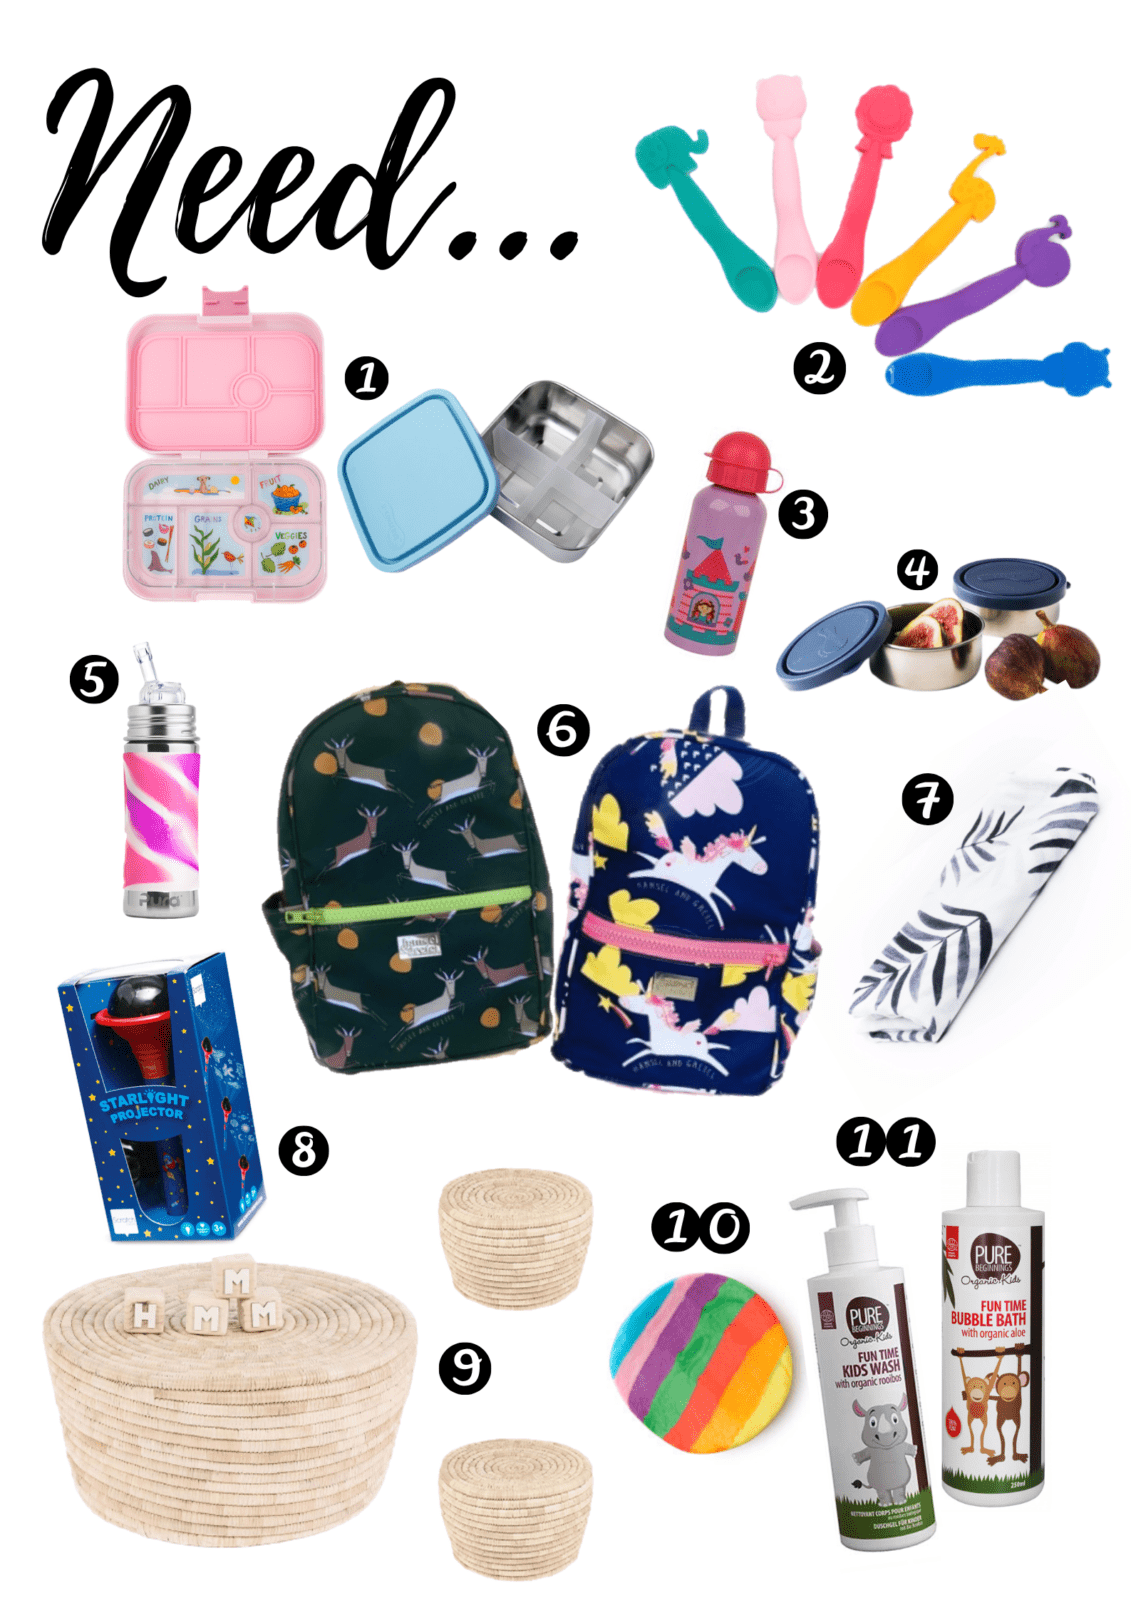 Want Need Wear And Read Gift Guides For Toddlers 2